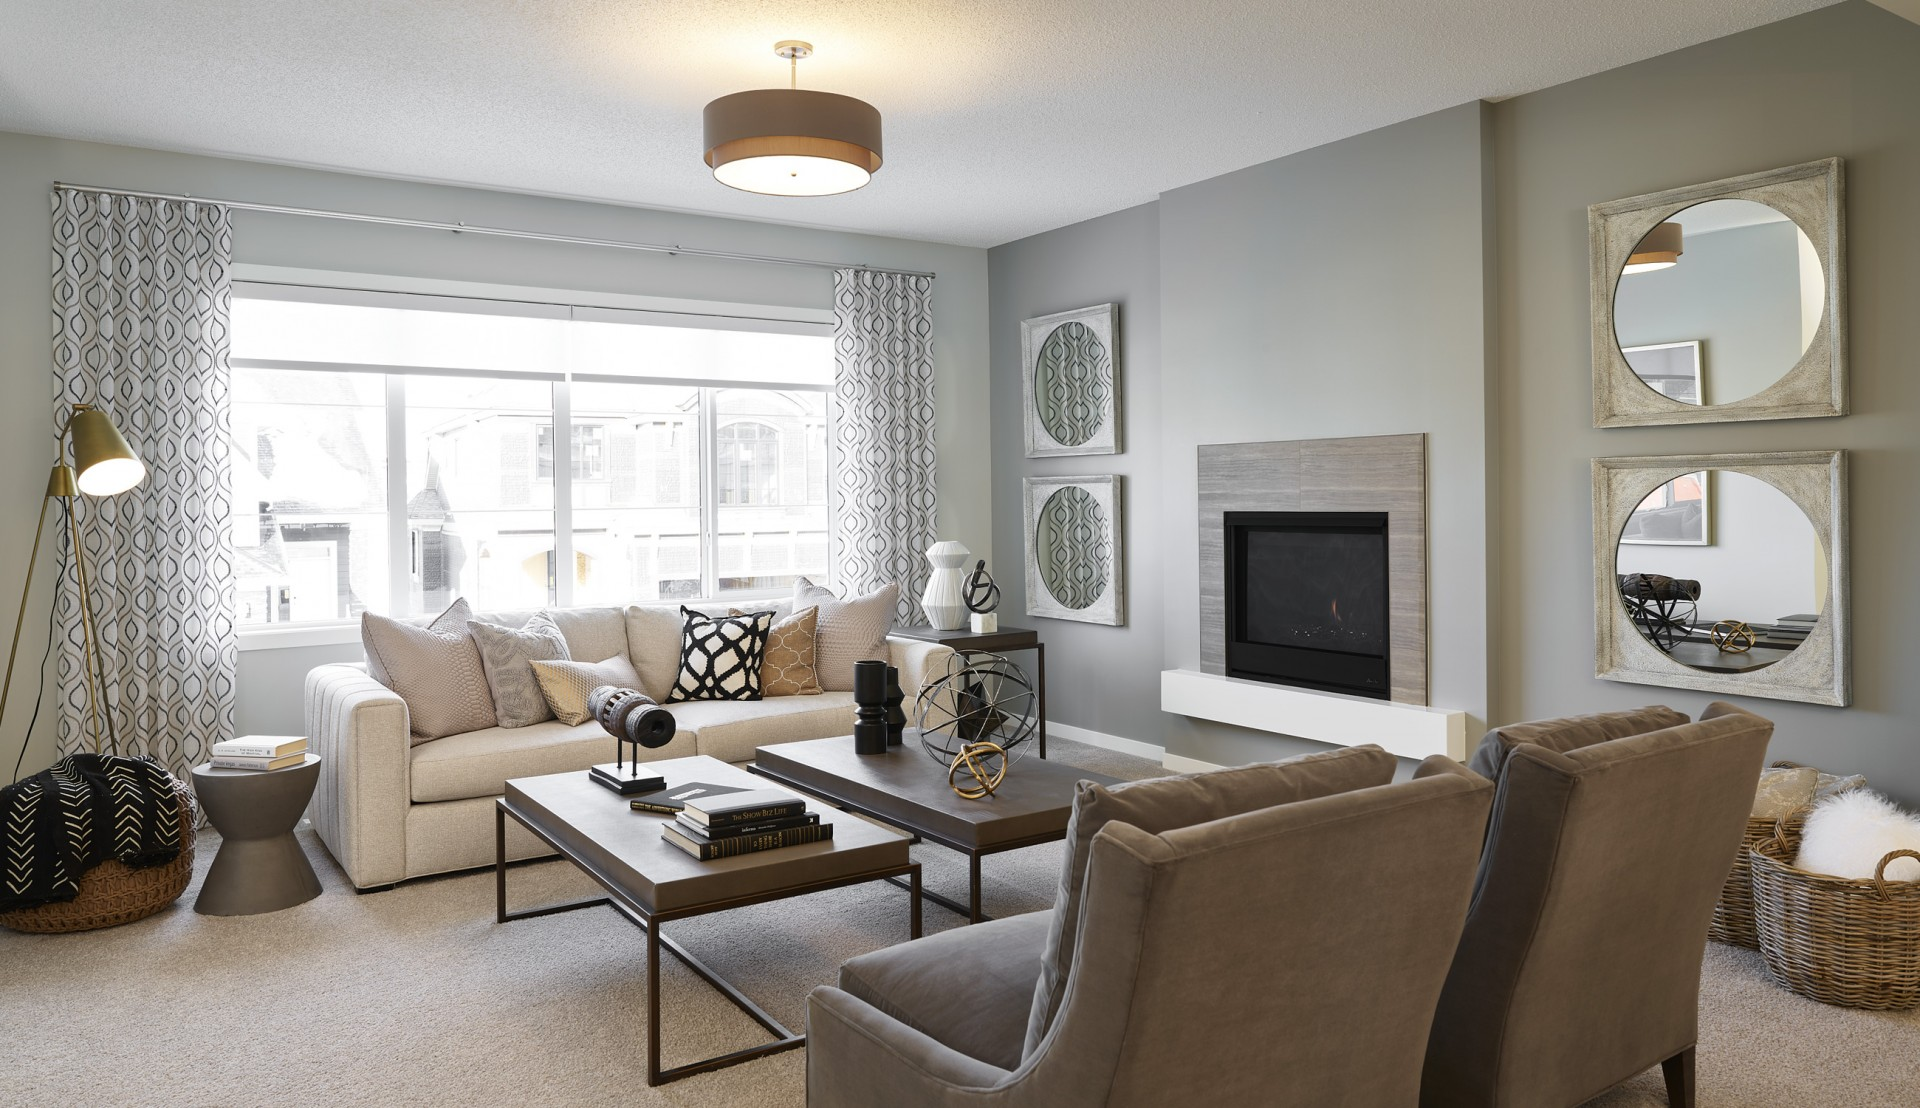 The Soho, by Calbridge Homes